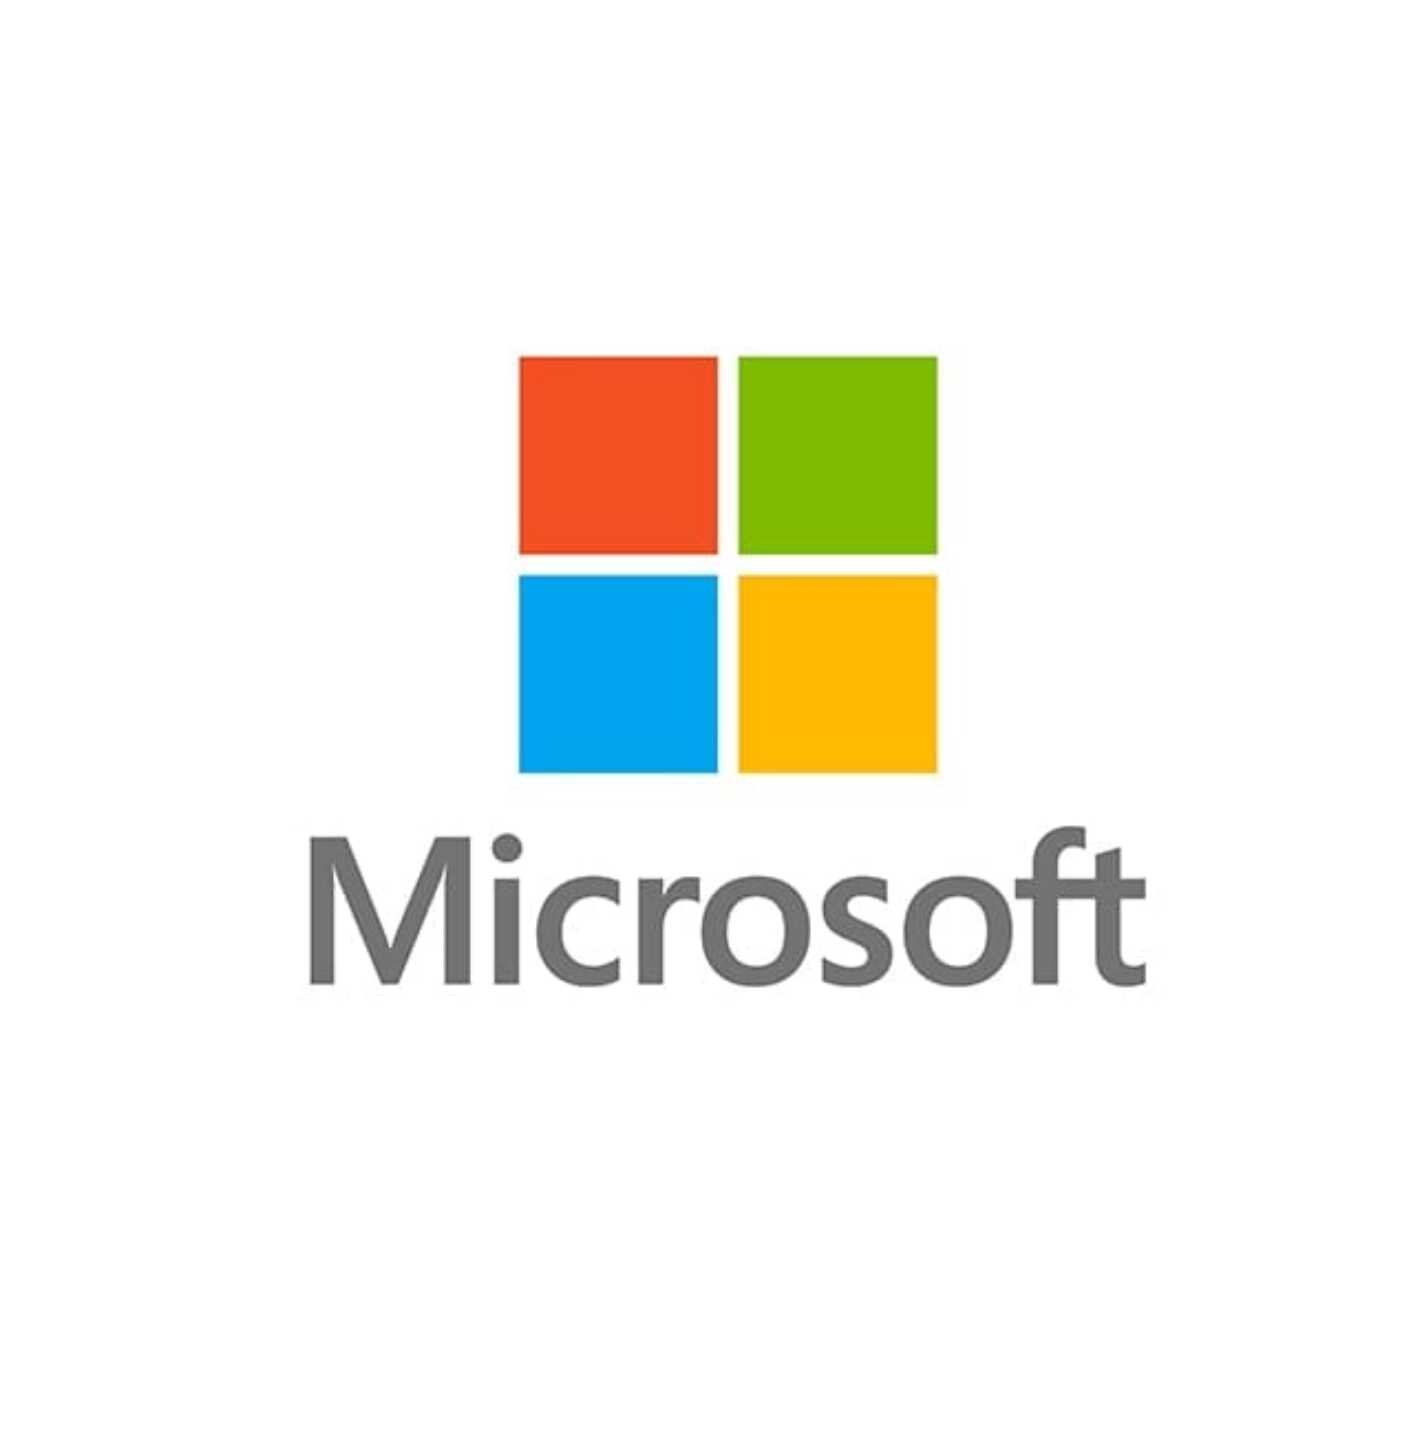 Microsoft - good.jpg